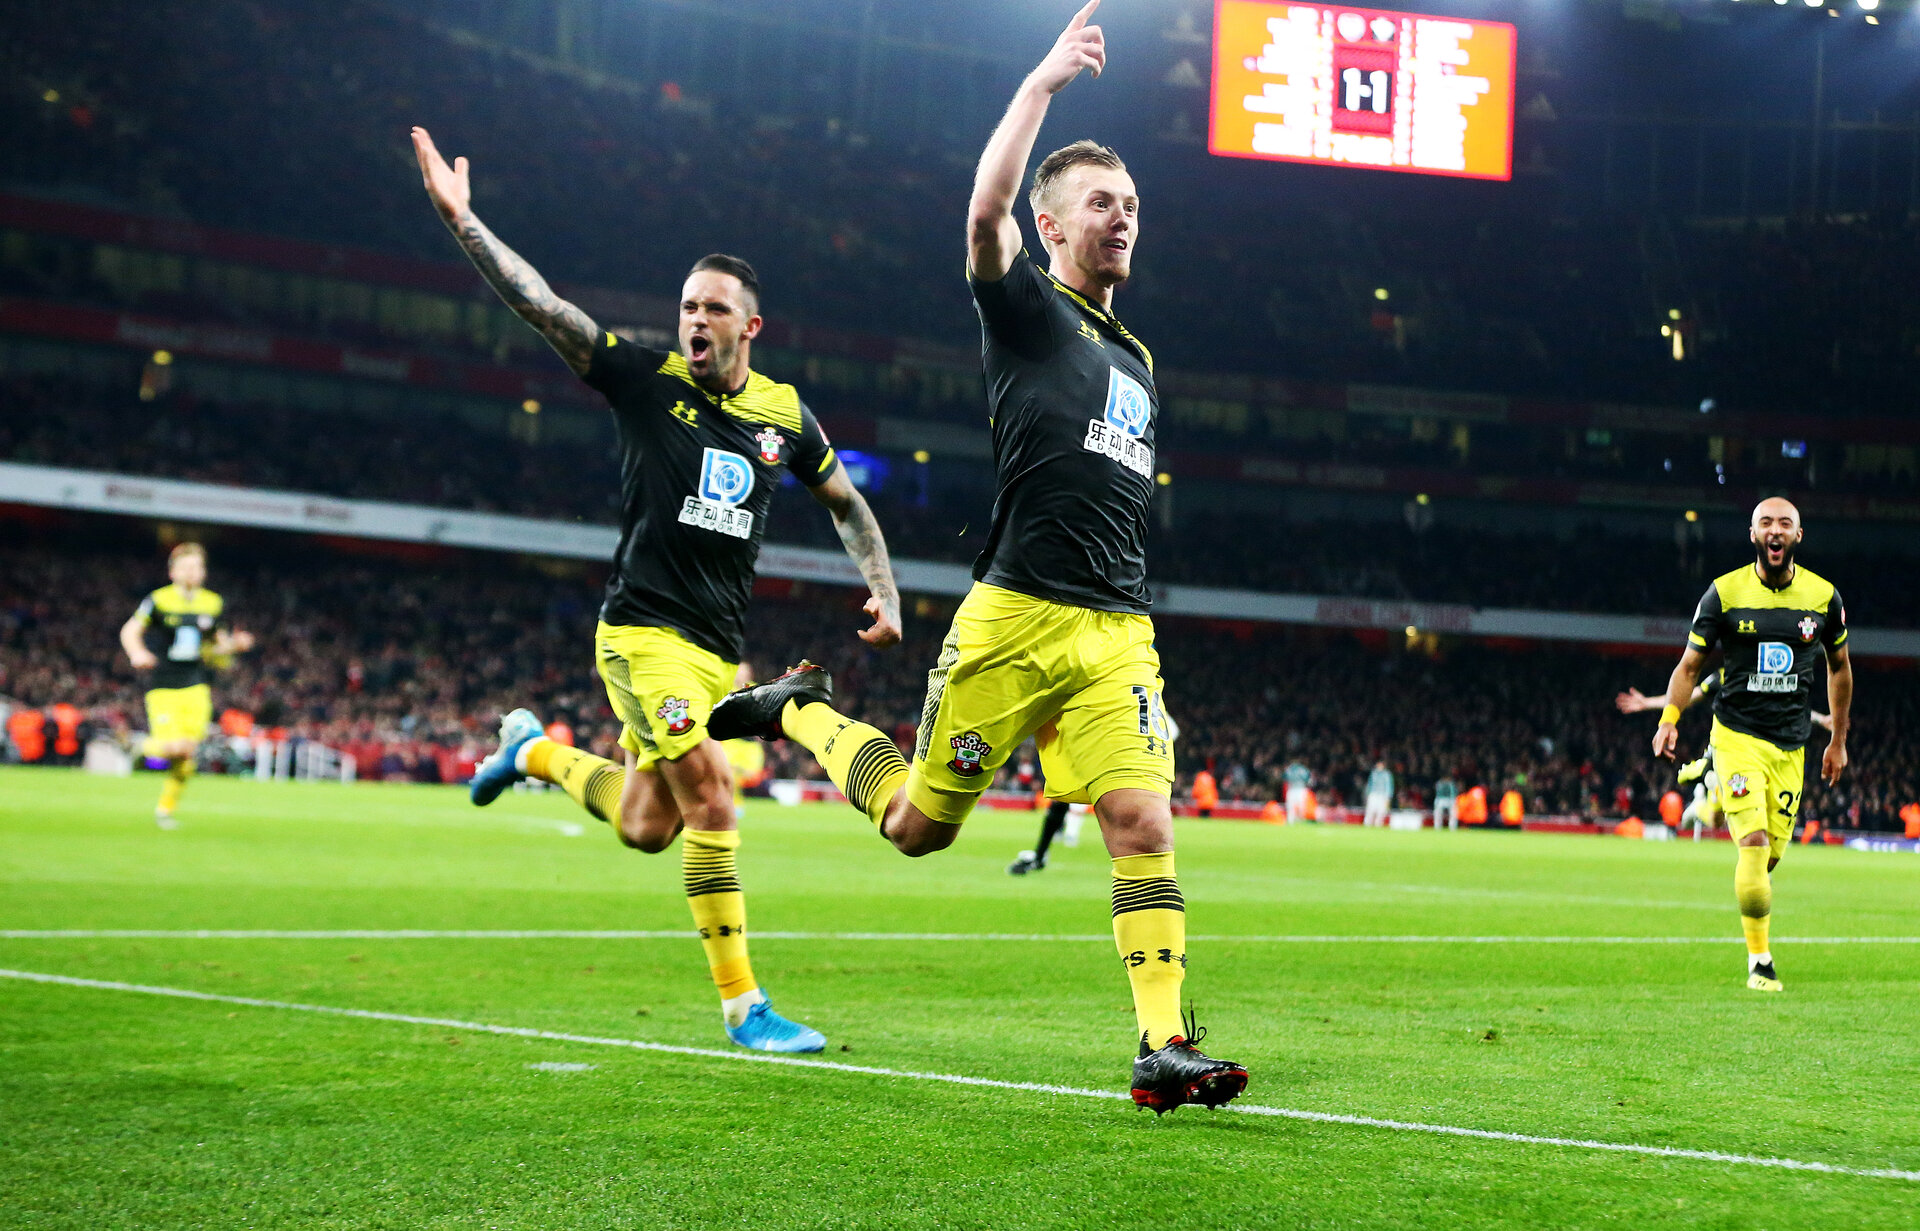 LONDON, ENGLAND - NOVEMBER 23: James Ward-Prowse(R) of Southampton celebrates after putting his team 2-1 up during the Premier League match between Arsenal FC and Southampton FC at Emirates Stadium on November 23, 2019 in London, United Kingdom. (Photo by Matt Watson/Southampton FC via Getty Images)